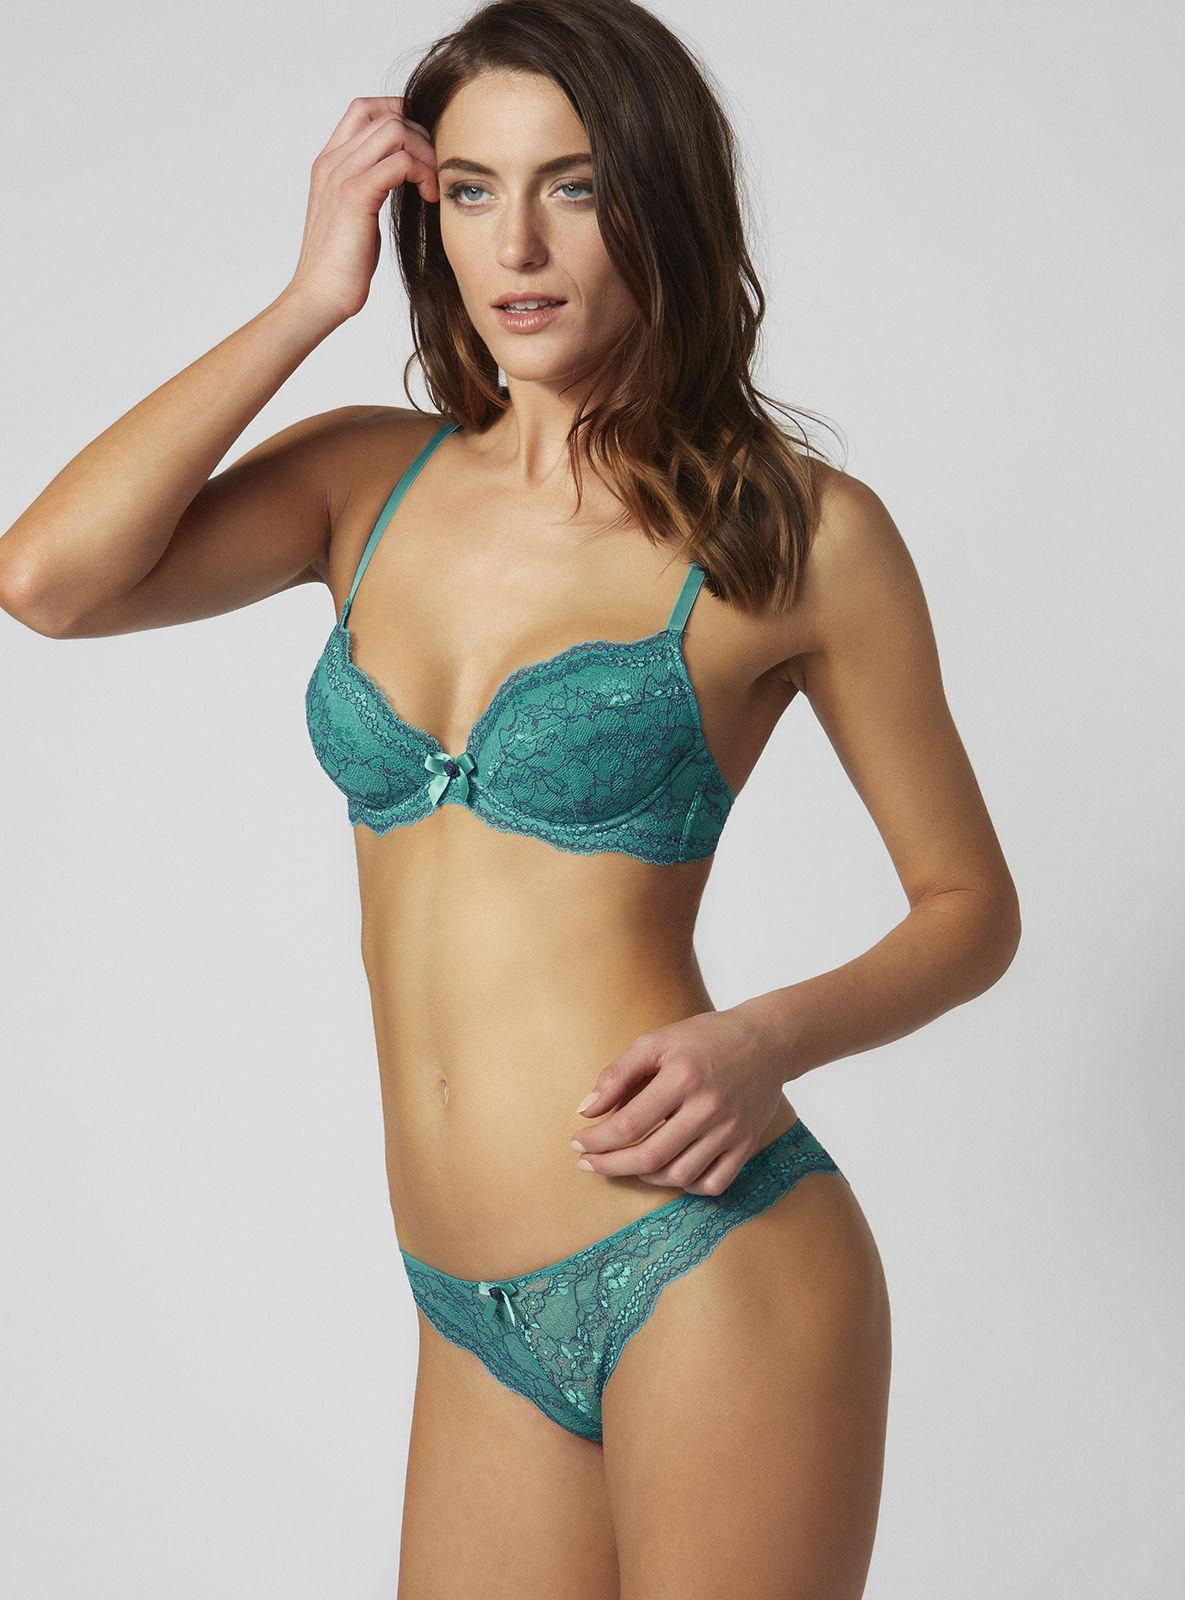 99a9091aed666 Lyst - Boux Avenue Chloe Contrast Plunge Bra